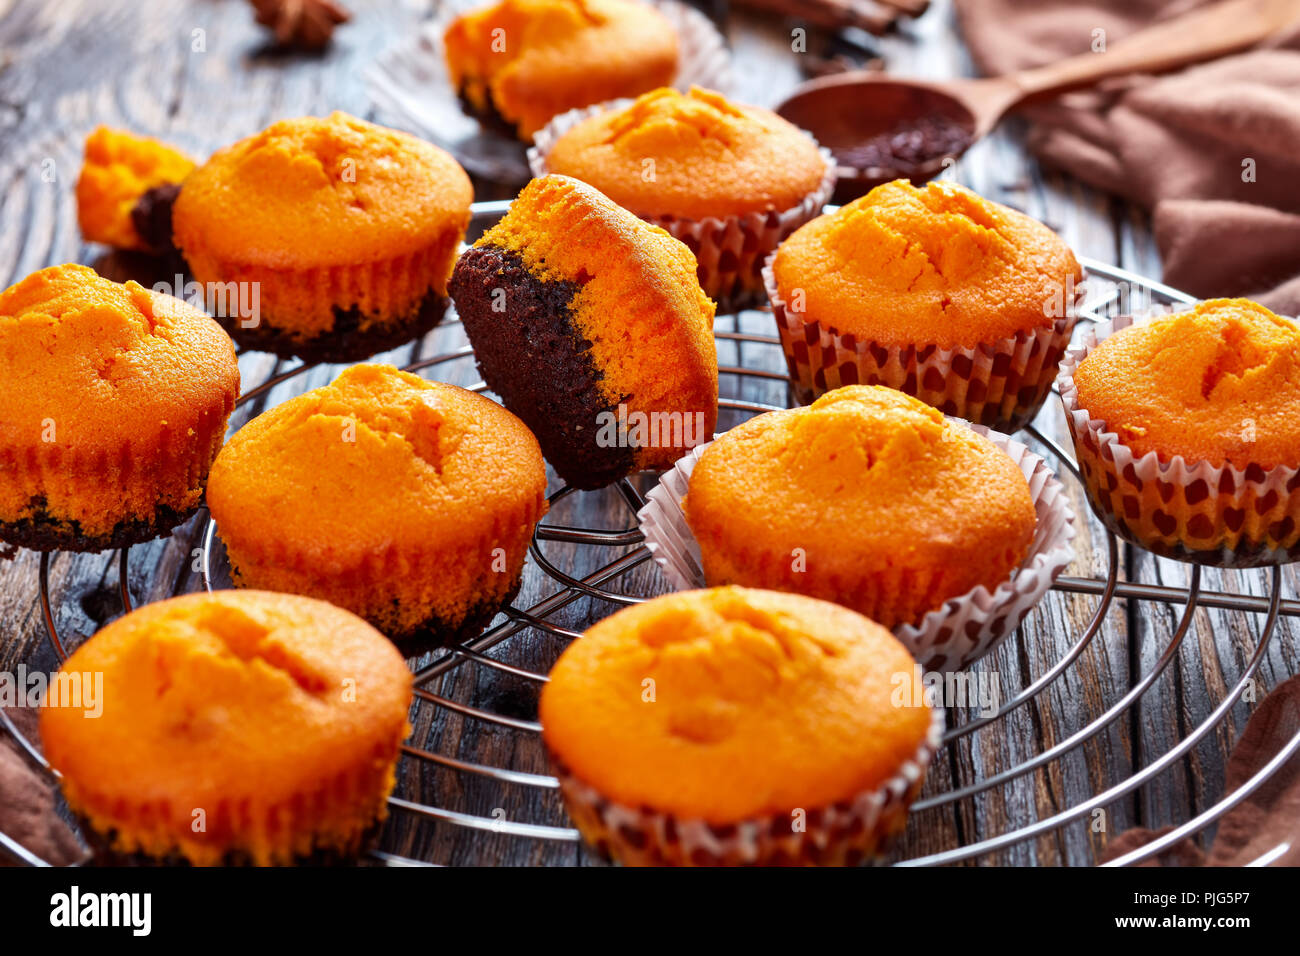 freshly baked delicious sweet pumpkin muffins  on a Round Stainless Steel Cake Cooling Rack on a rustic wooden table, delicious autumn dessert for hal - Stock Image